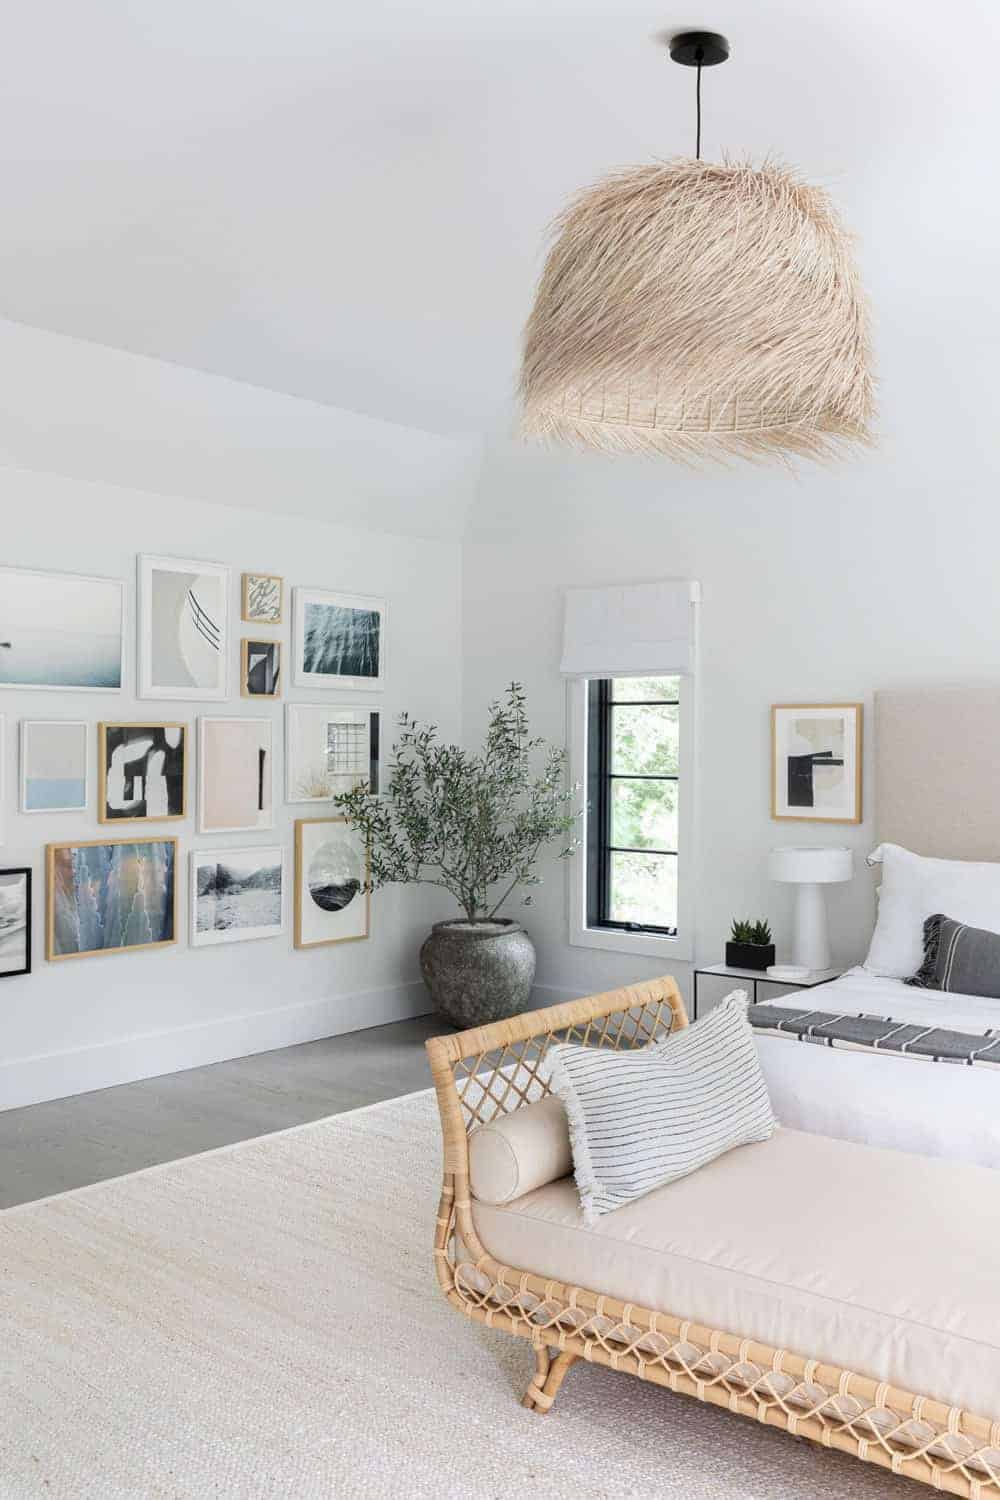 The master bedroom offers a gorgeous and eye-catching ceiling lighting set on the regular white ceiling.